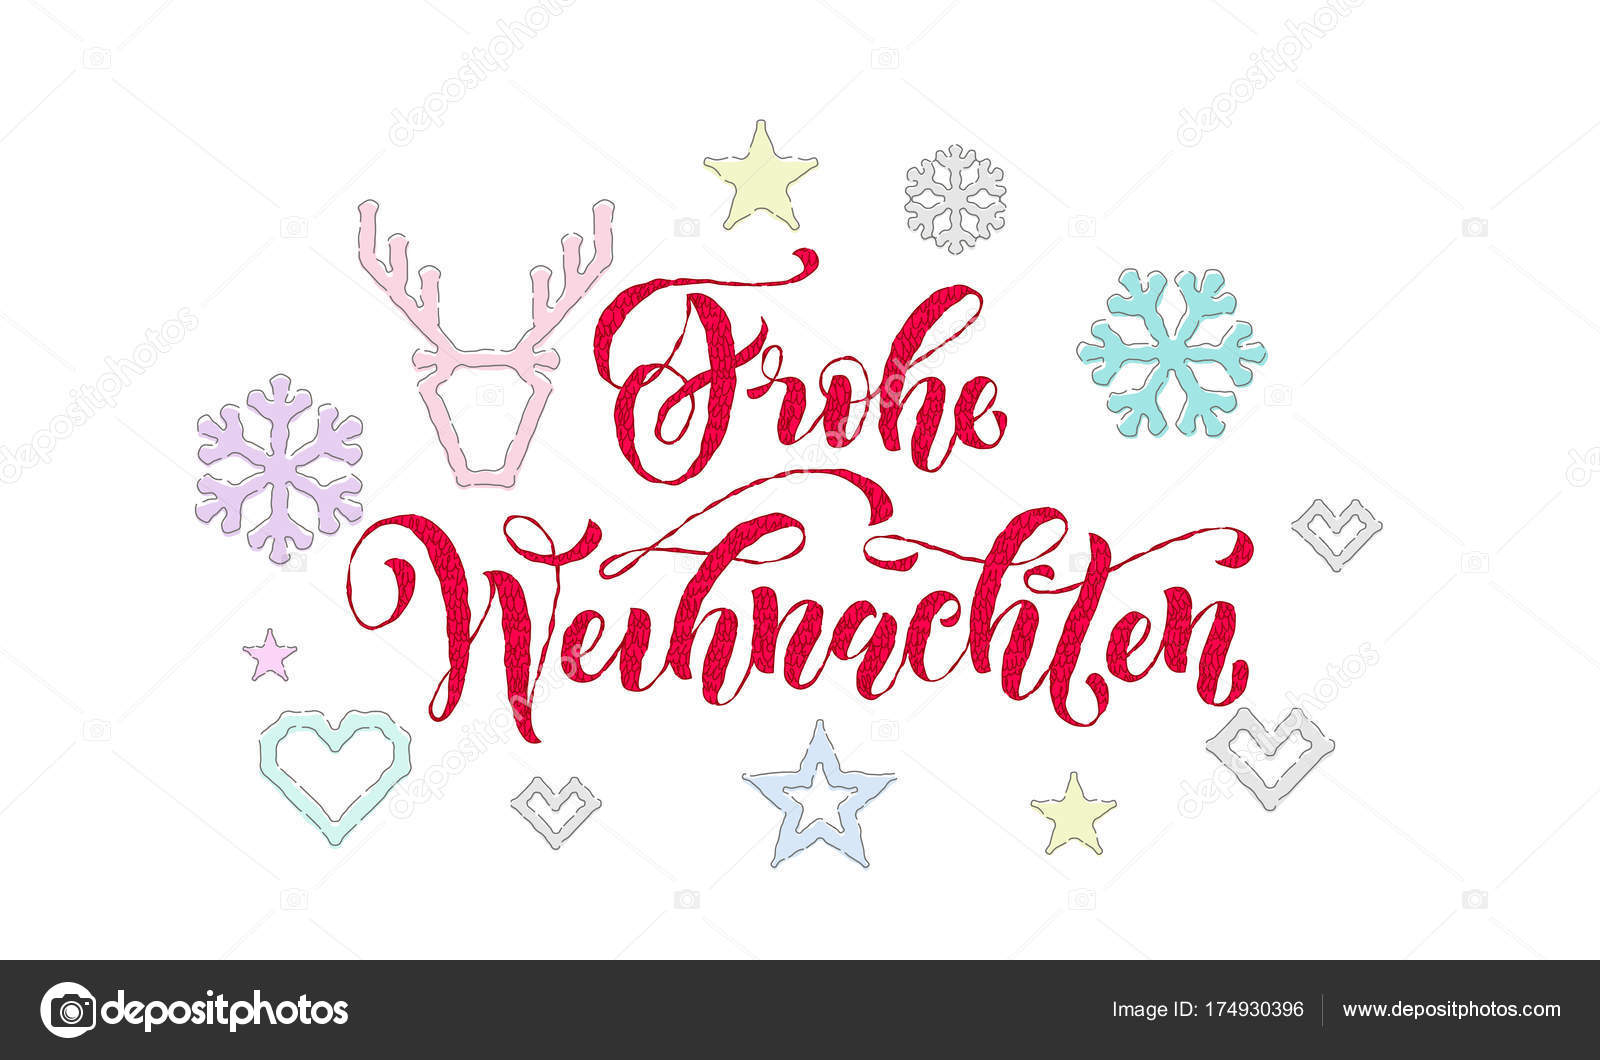 Frohe Weihnachten German Merry Christmas Knitted Calligraphy Font